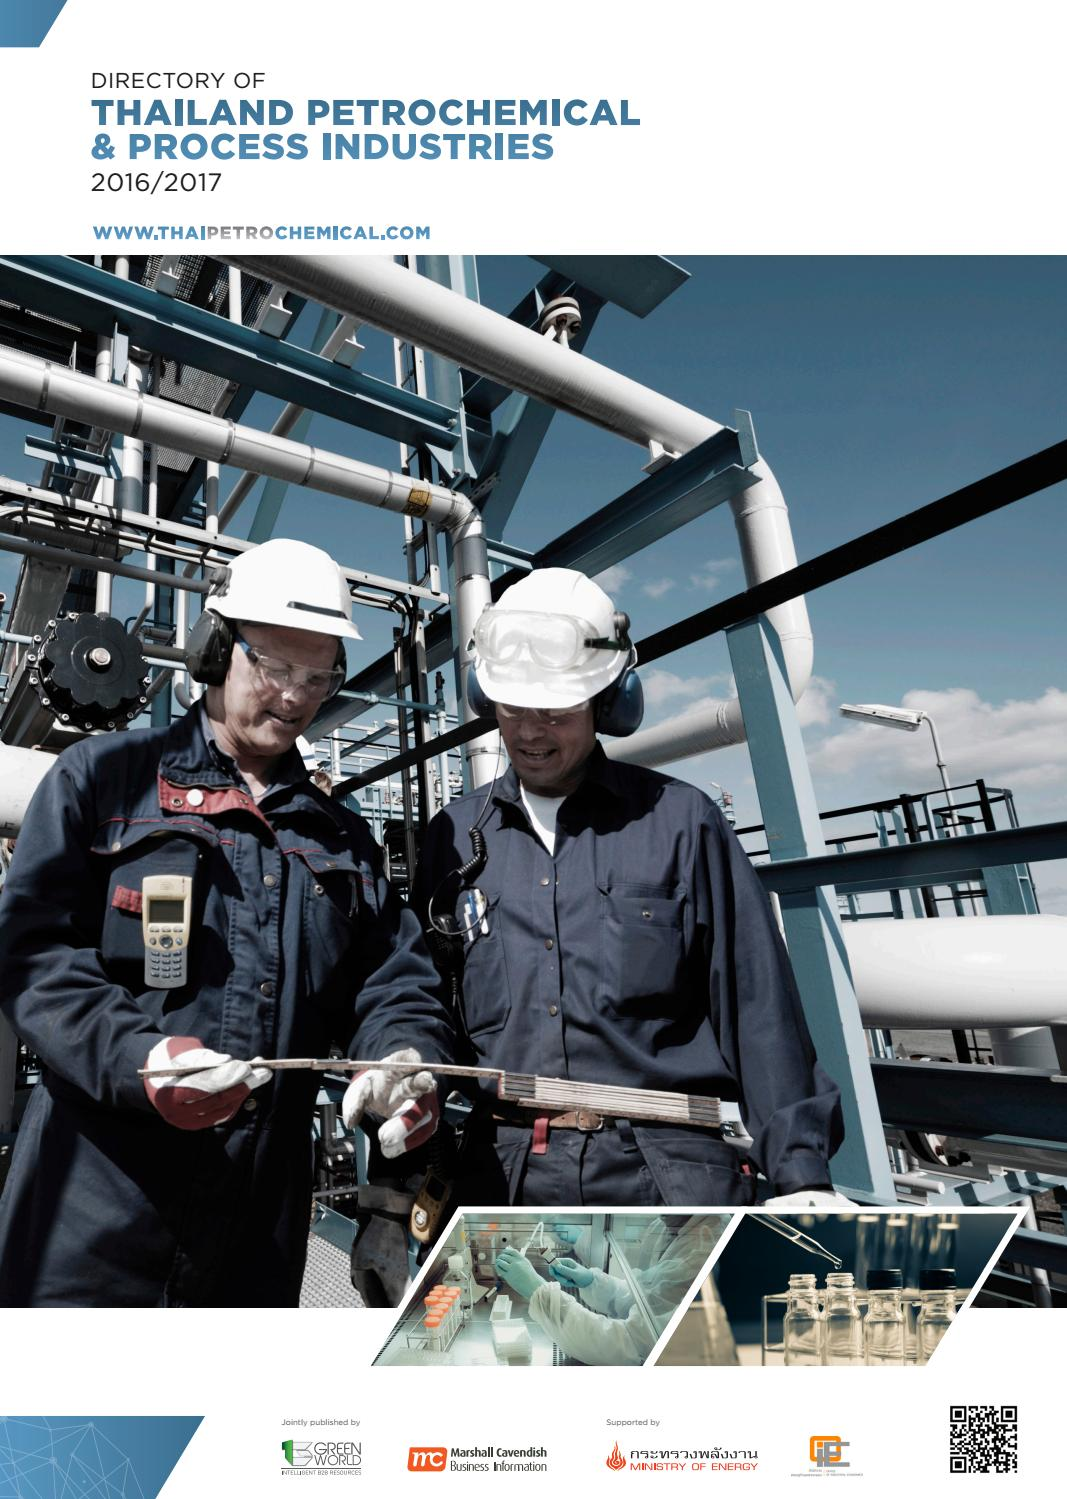 Directory of Thailand Petrochemical & Process Industries